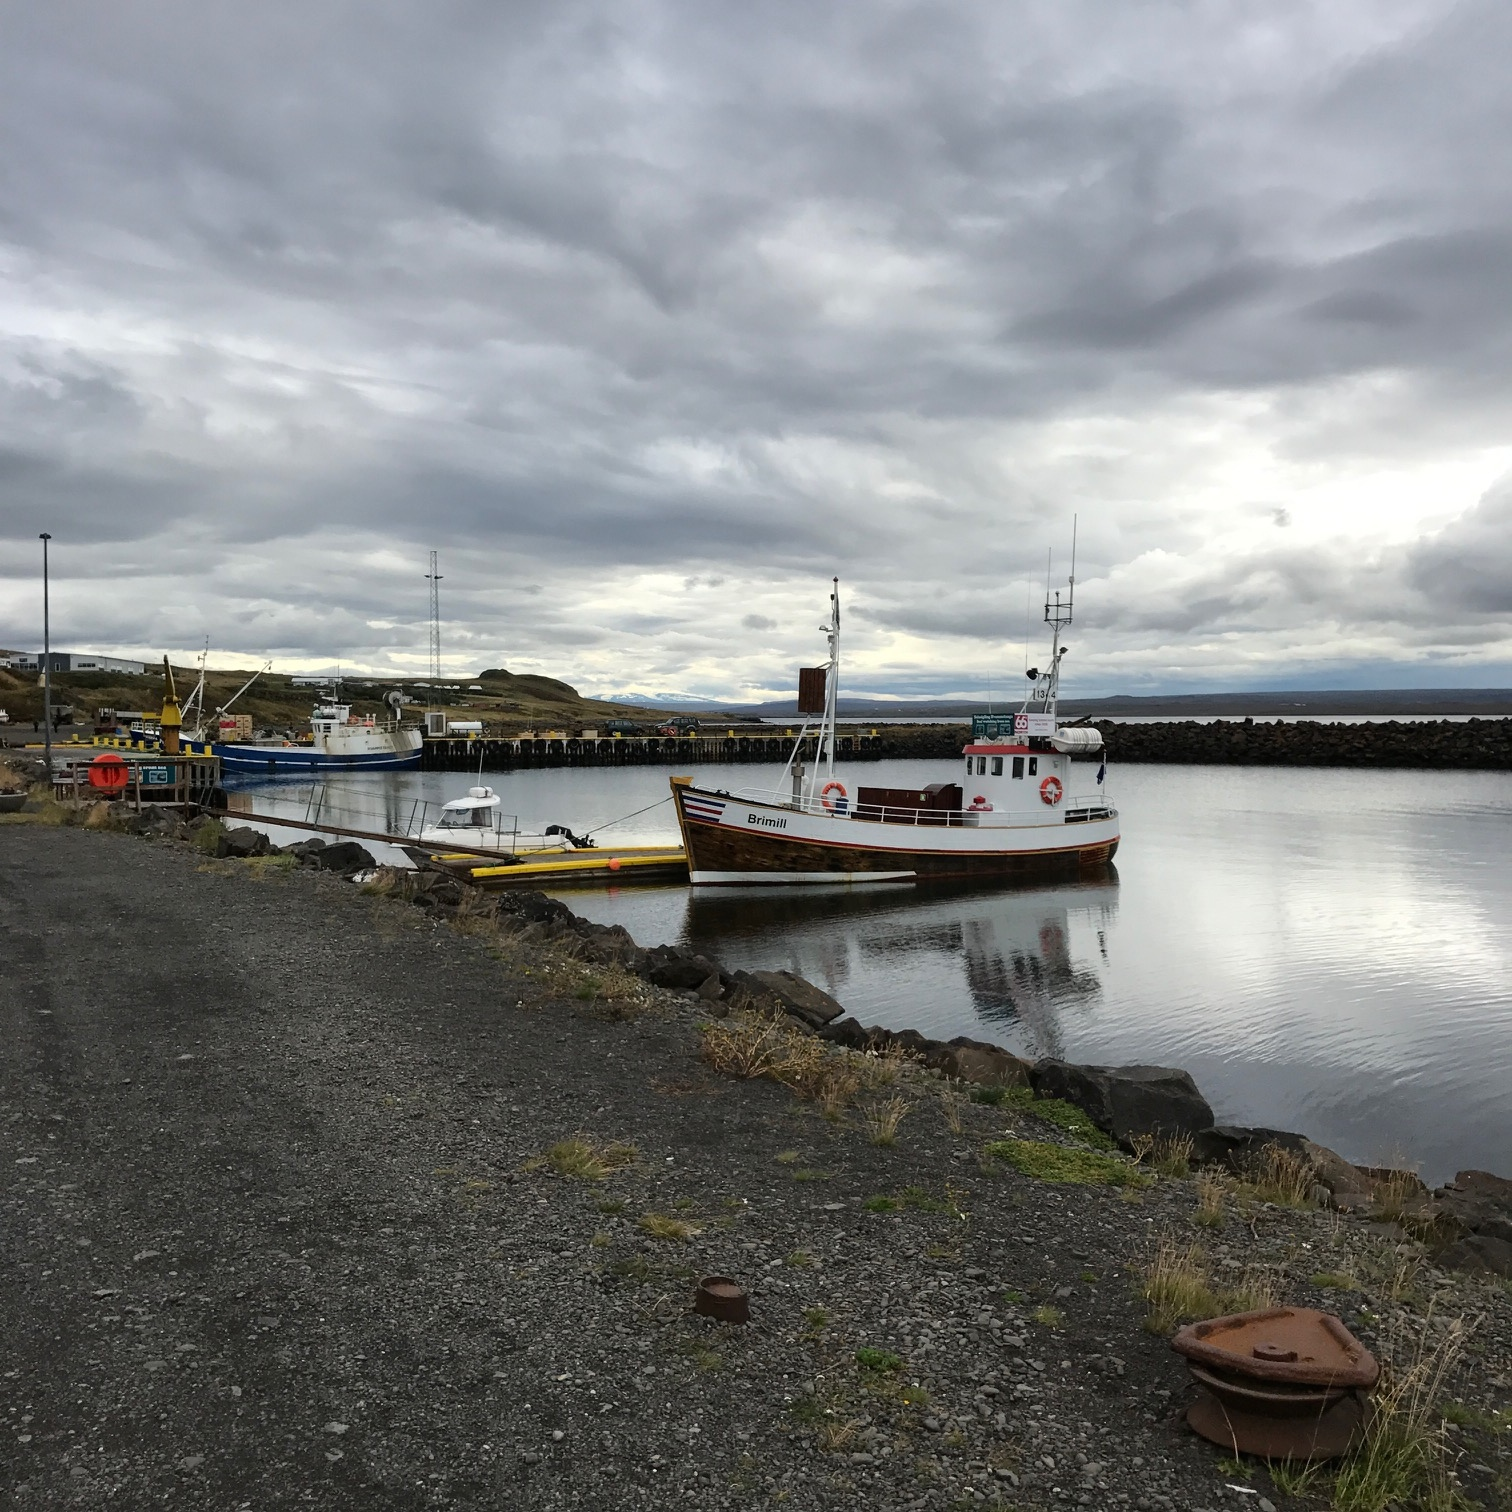 Icelandic Dining As Appealing As the Scenery…